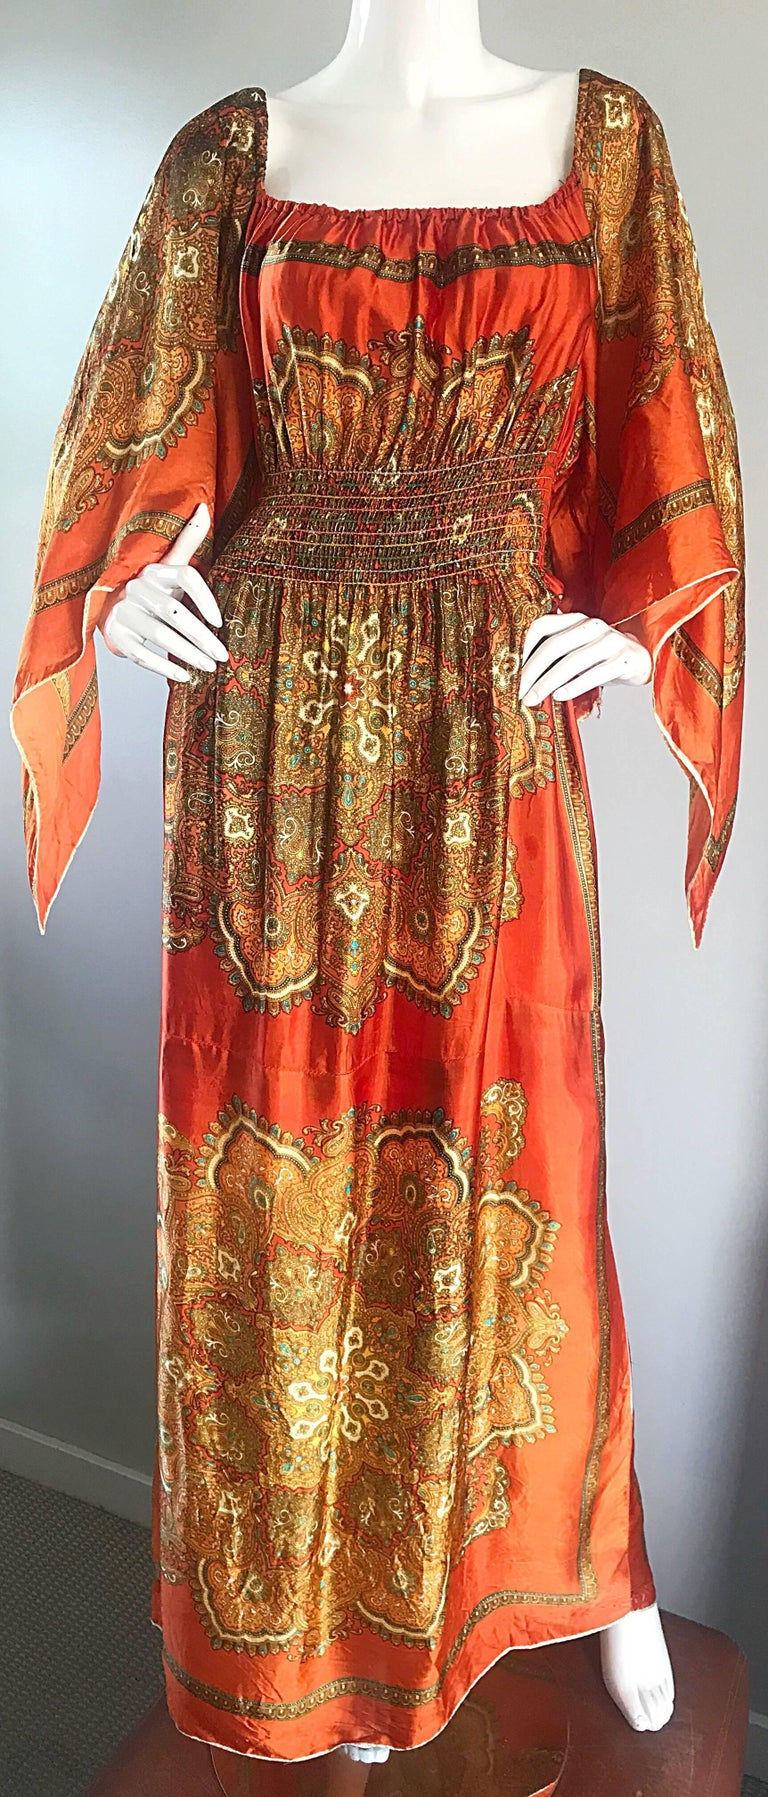 Amazing 1970s Off - Shoulder Boho Ethnic Print Silky Vintage 70s Maxi Dress 9